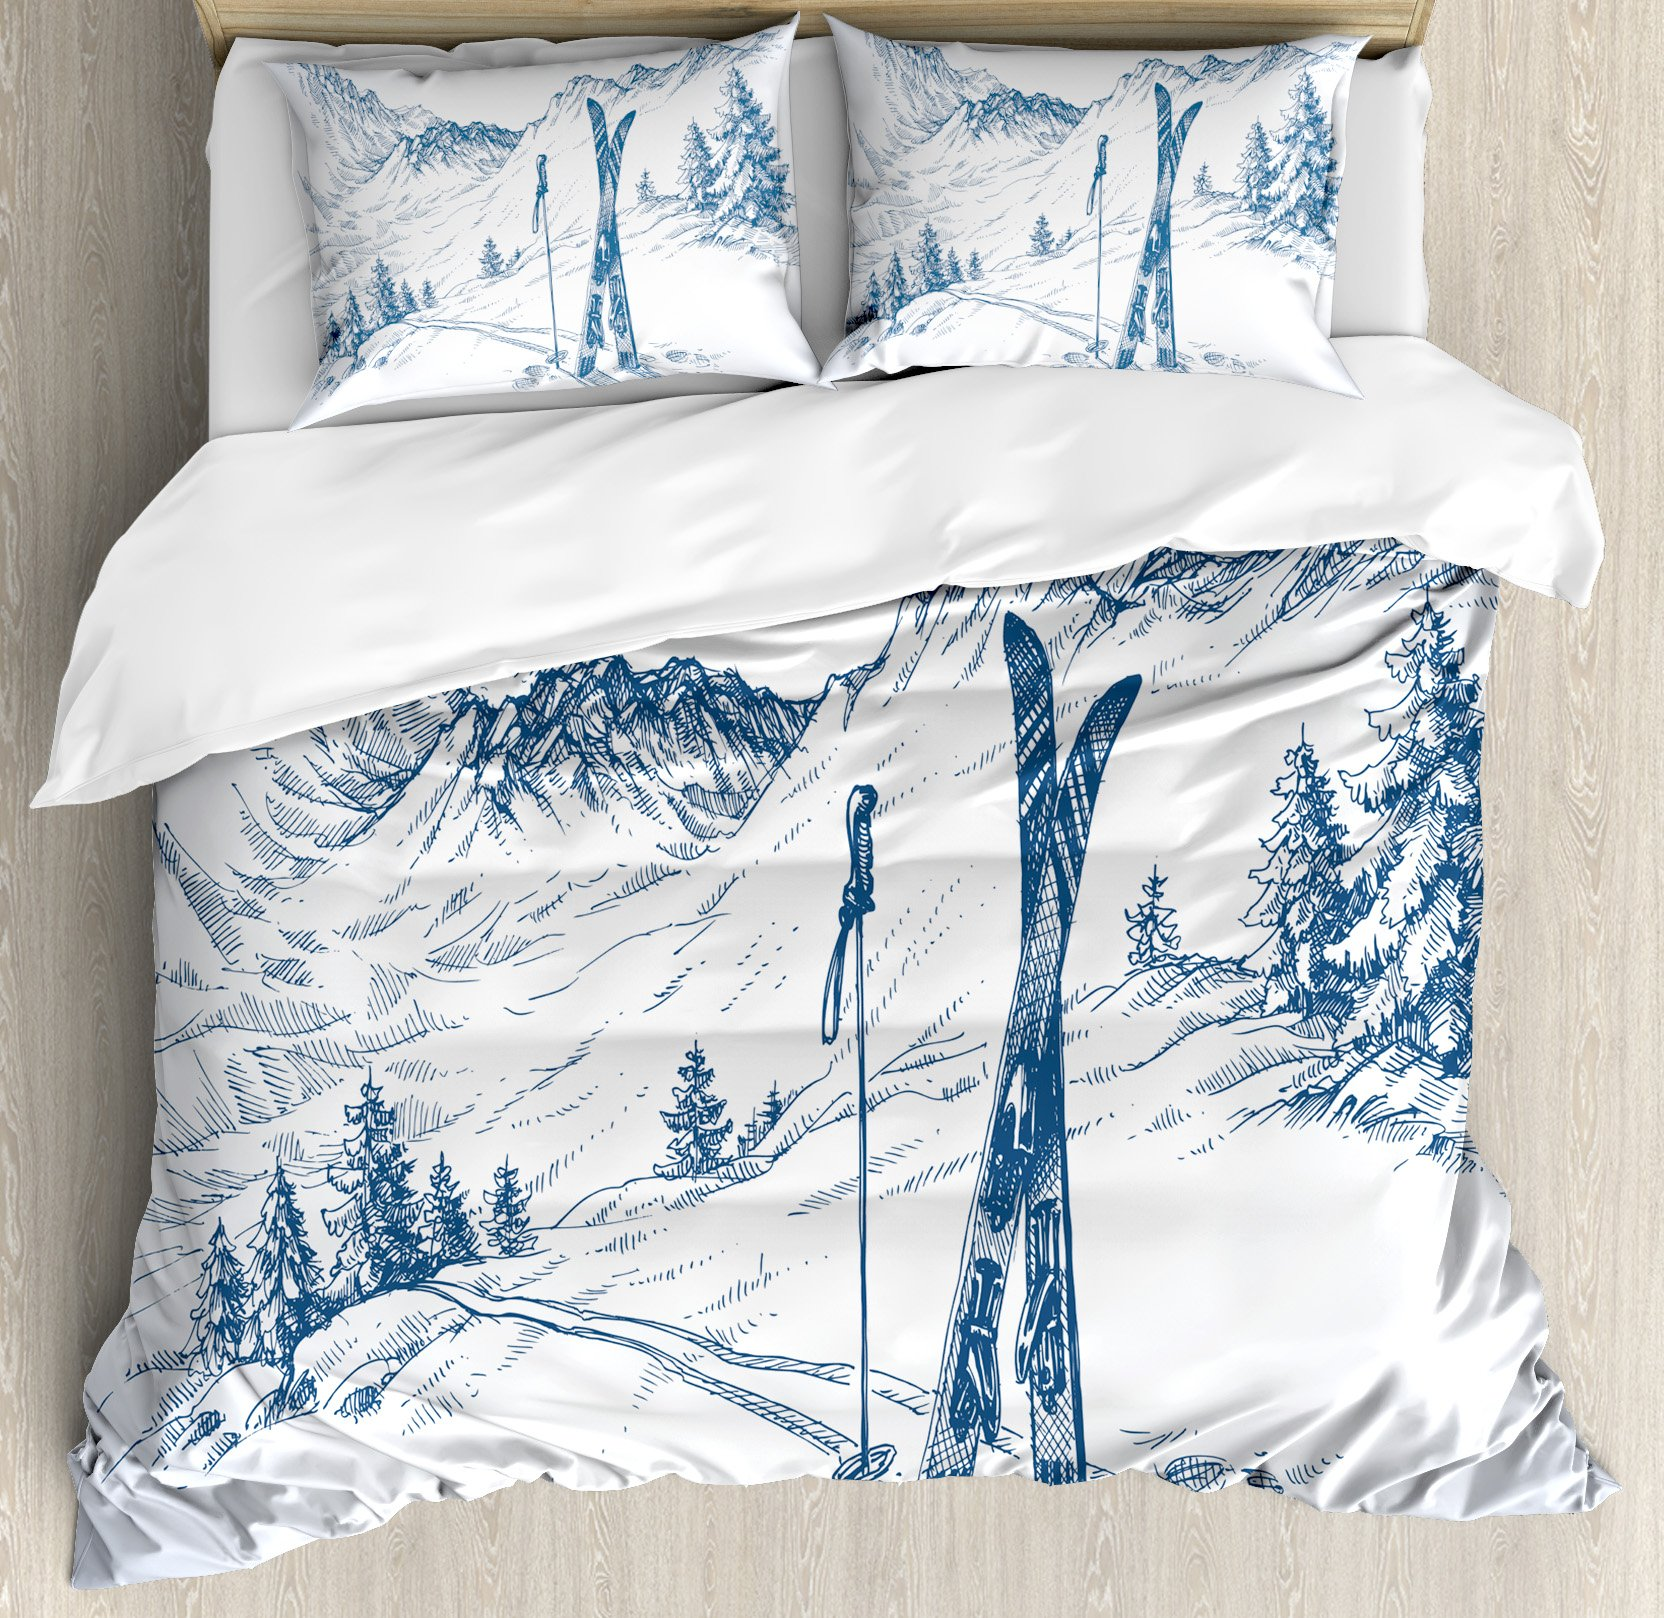 Winter Decorations Duvet Cover Set by Ambesonne, Sketchy Graphic of a Downhill with Ski Elements in Snow Relax Calm View, 3 Piece Bedding Set with Pillow Shams, Queen / Full, Blue White